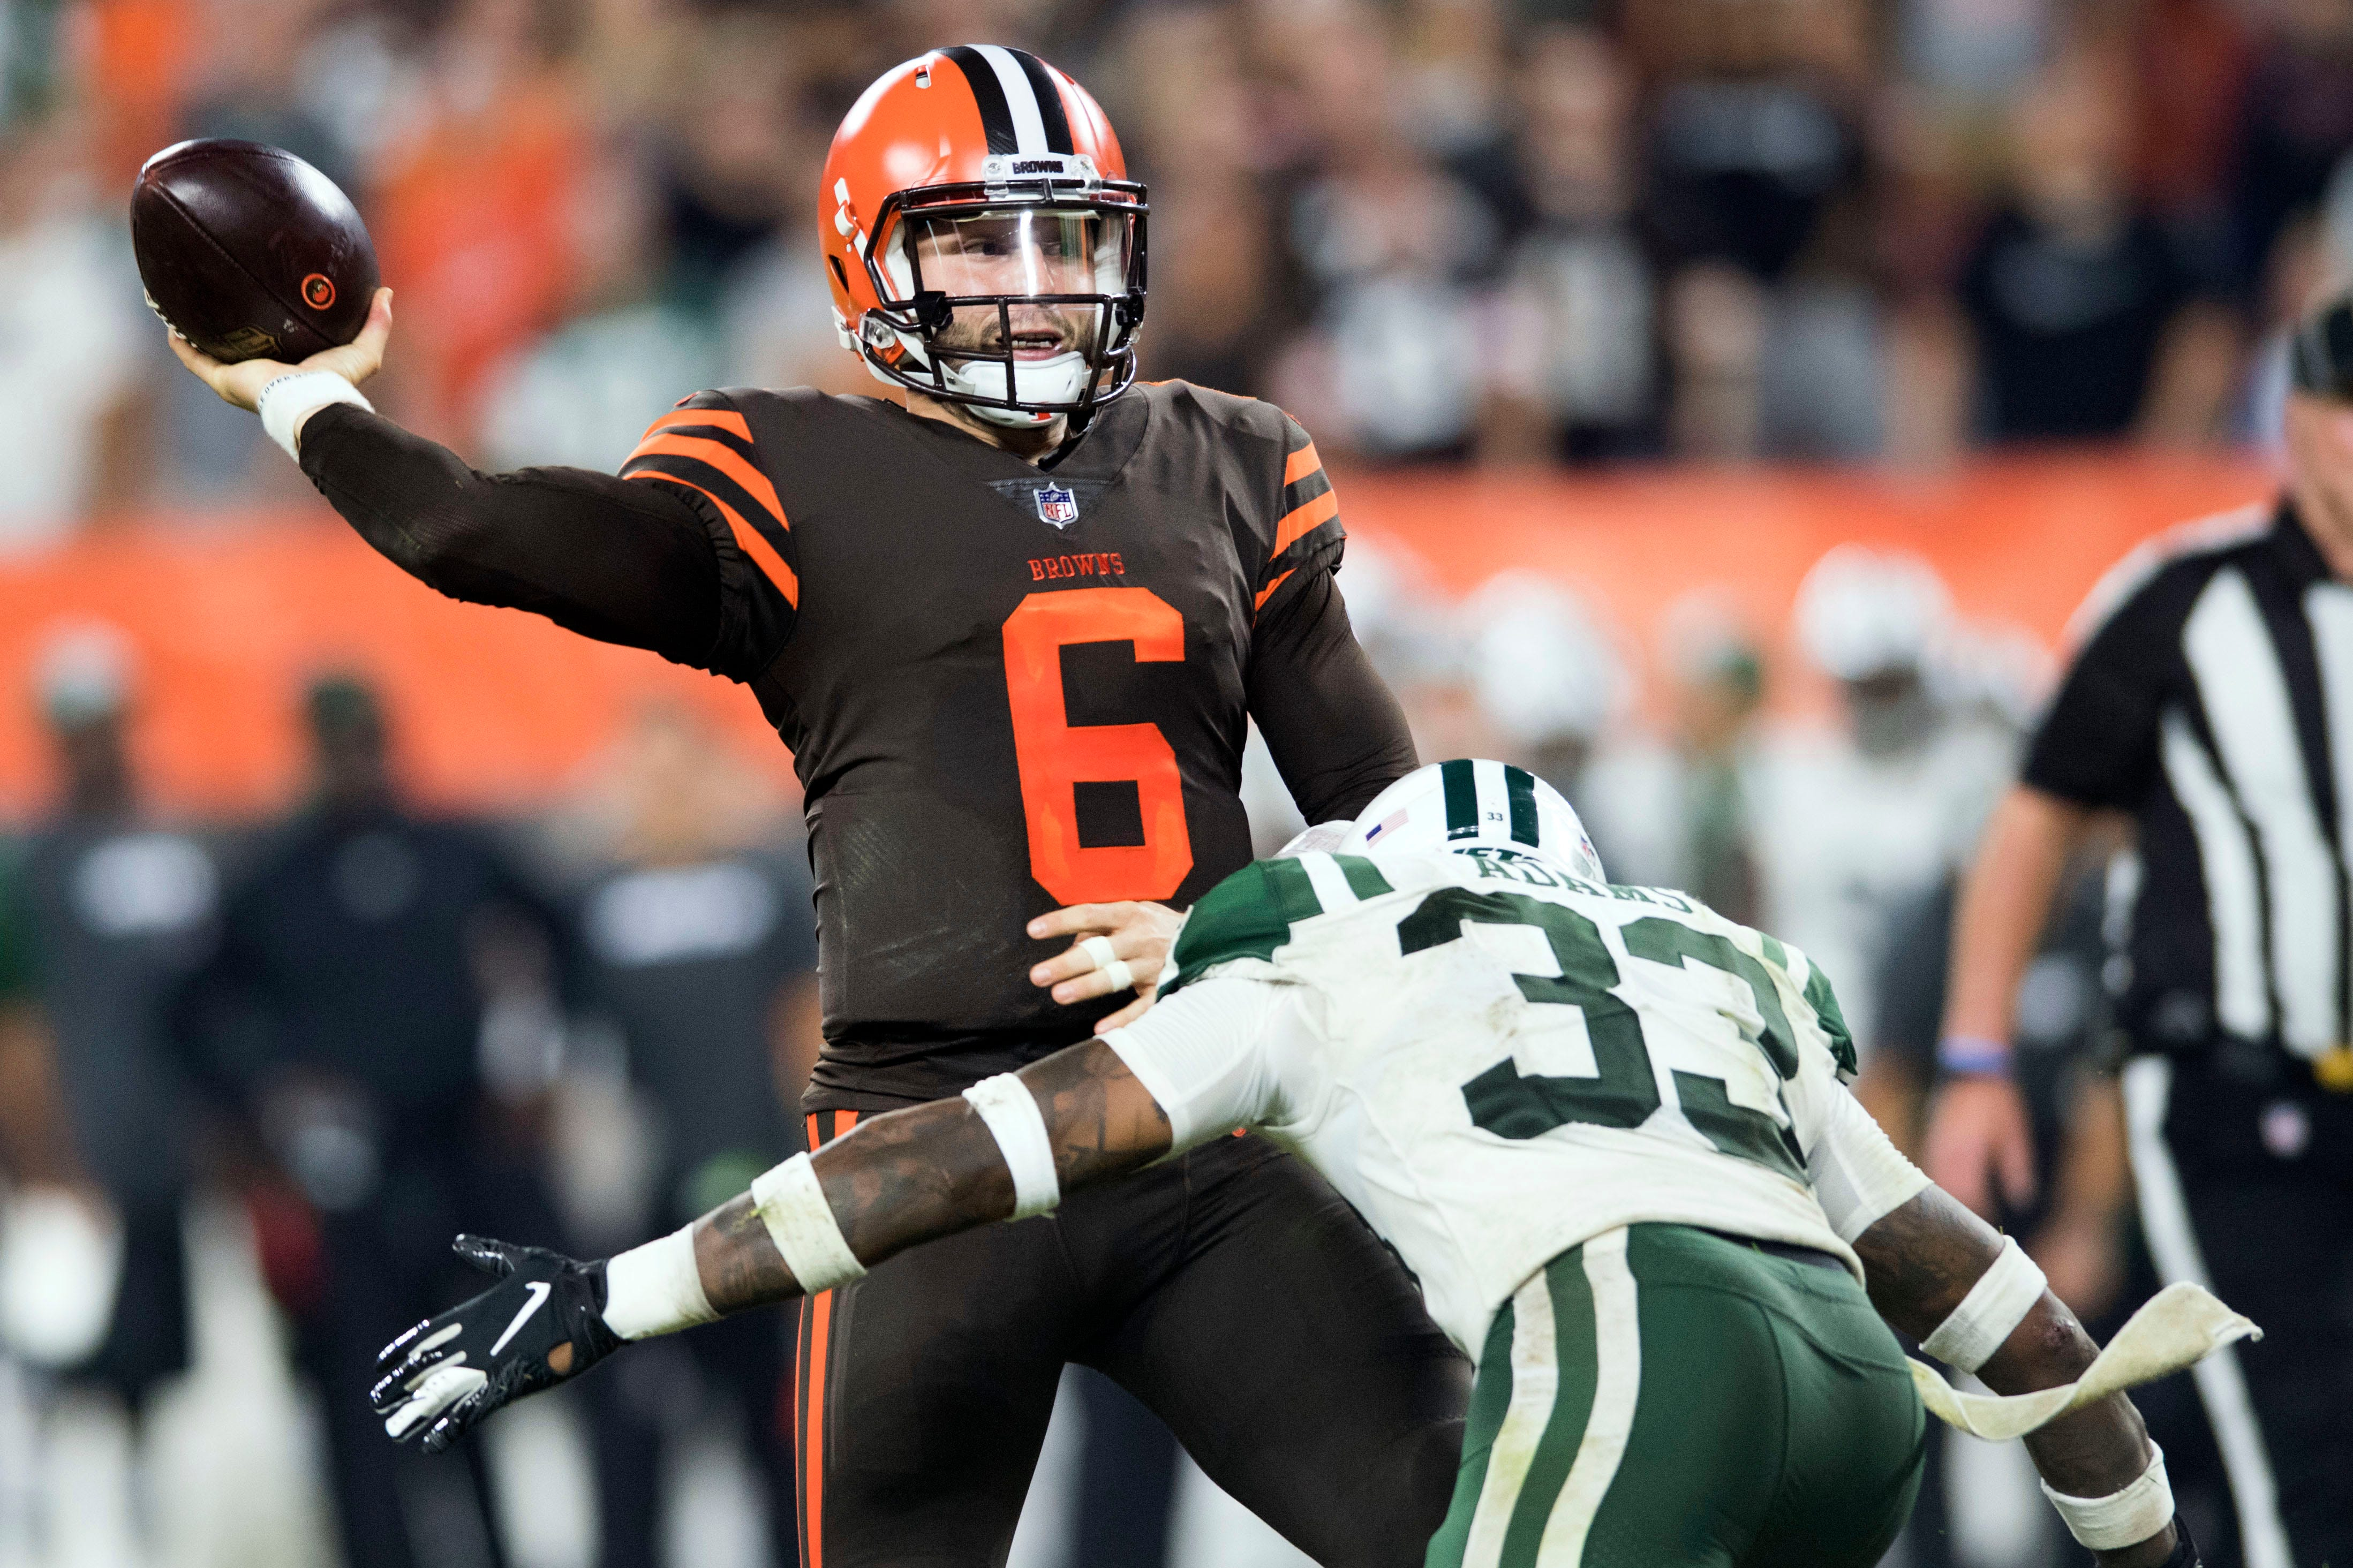 Cleveland Browns vs. New York Jets: Game time, live stream, TV channel, how to watch thumbnail